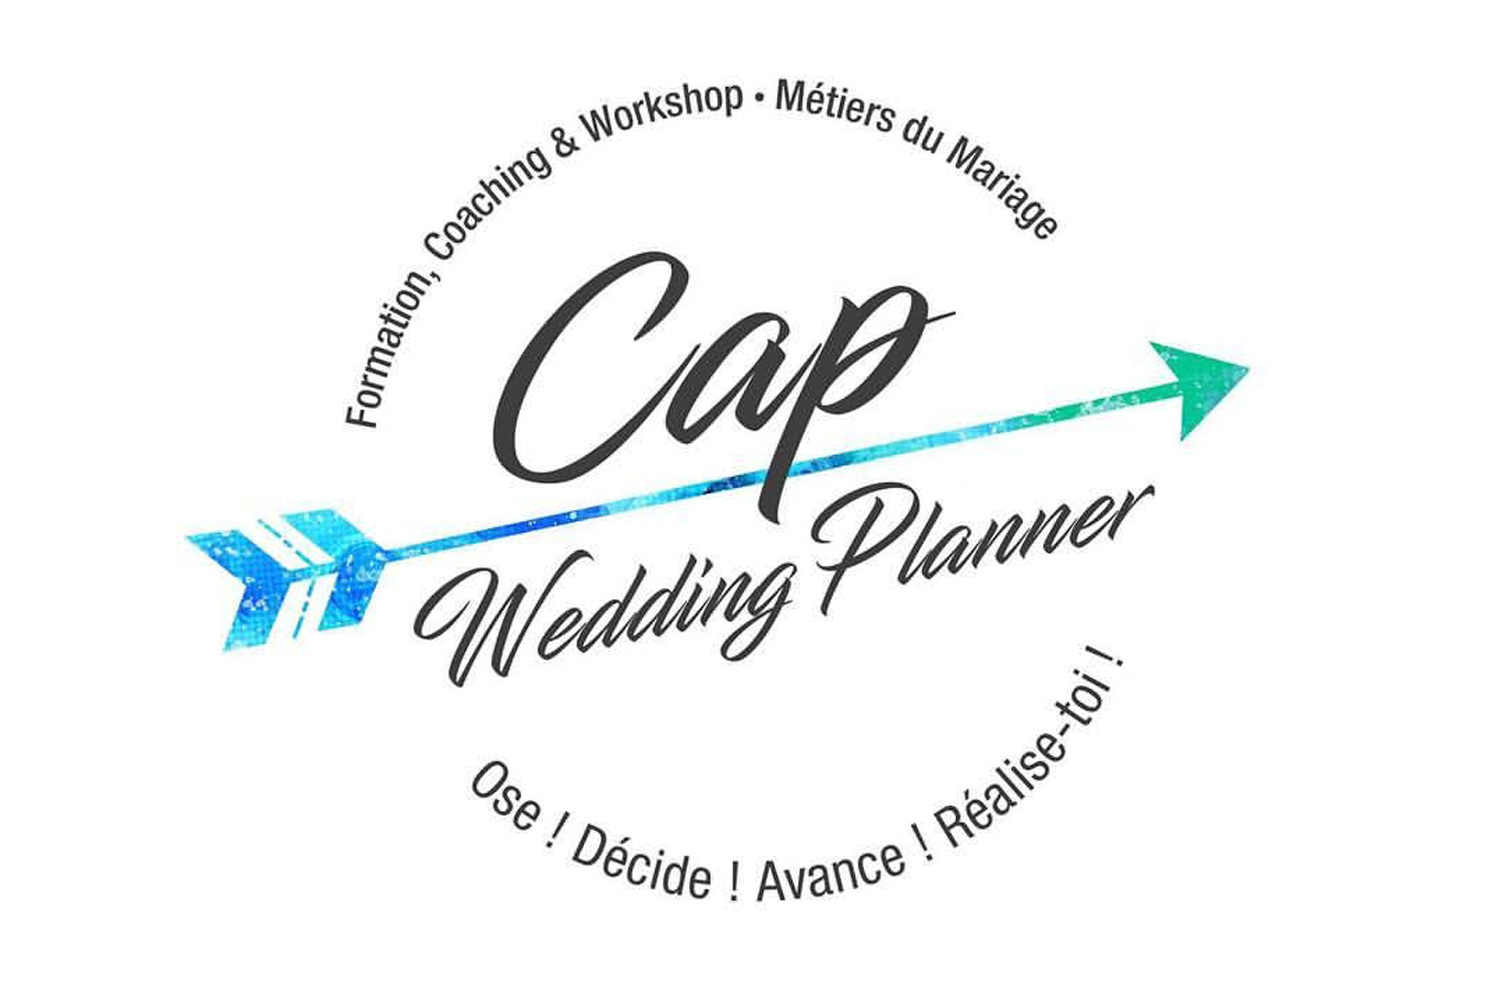 La 6eme session de formation wedding planner